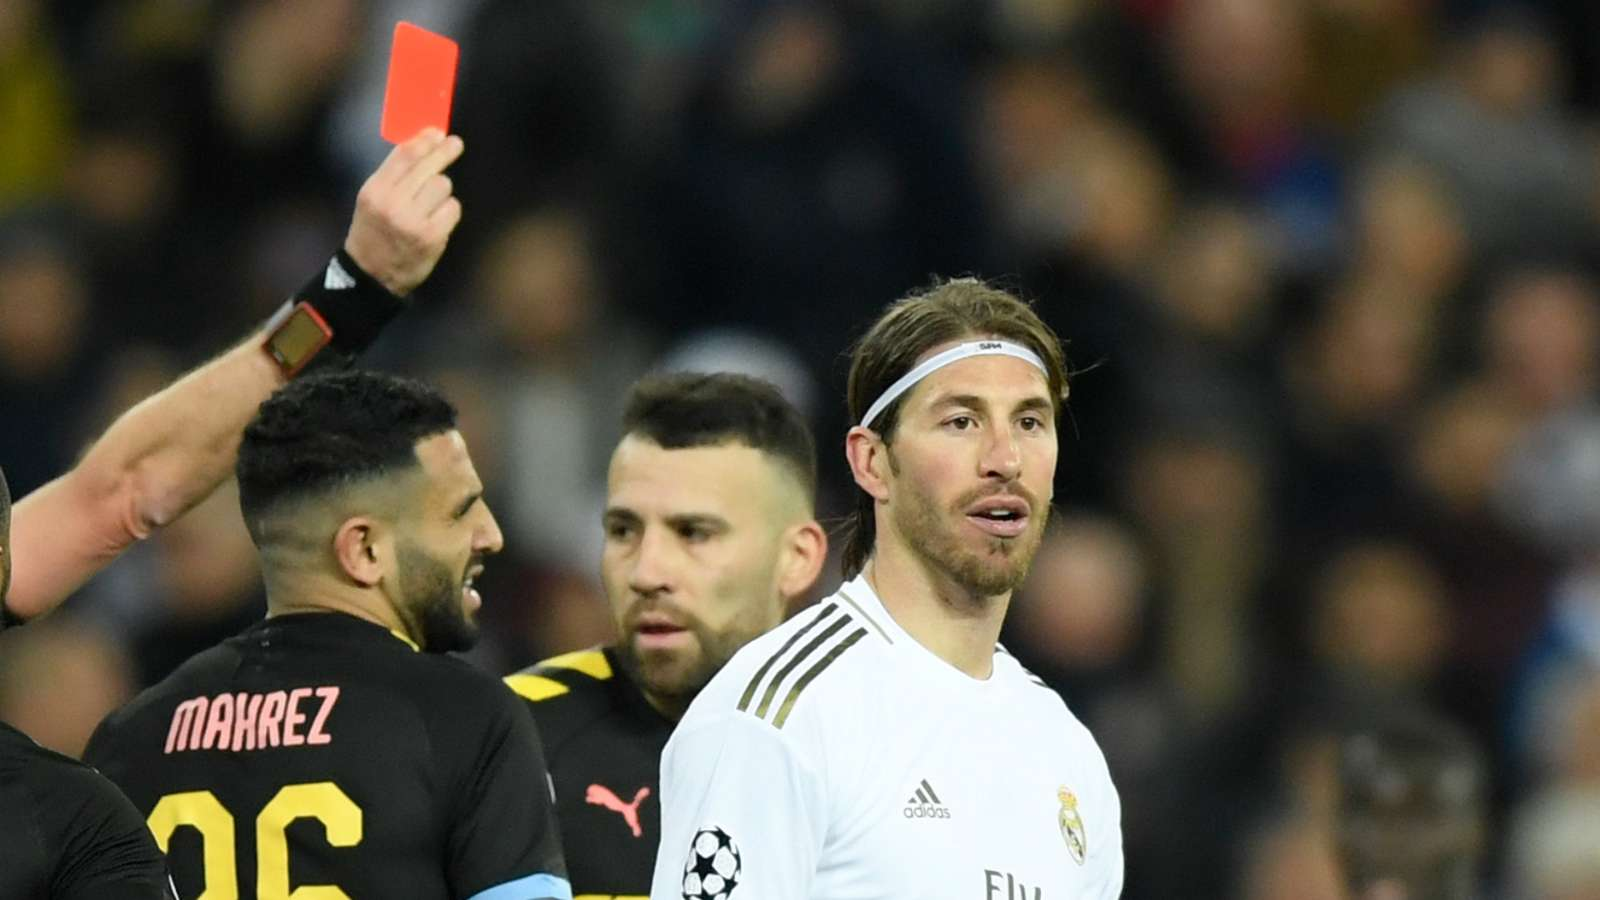 Video: Watch as cynical Sergio Ramos takes his 26th career red card for Real Madrid vs Man City - Bóng Đá